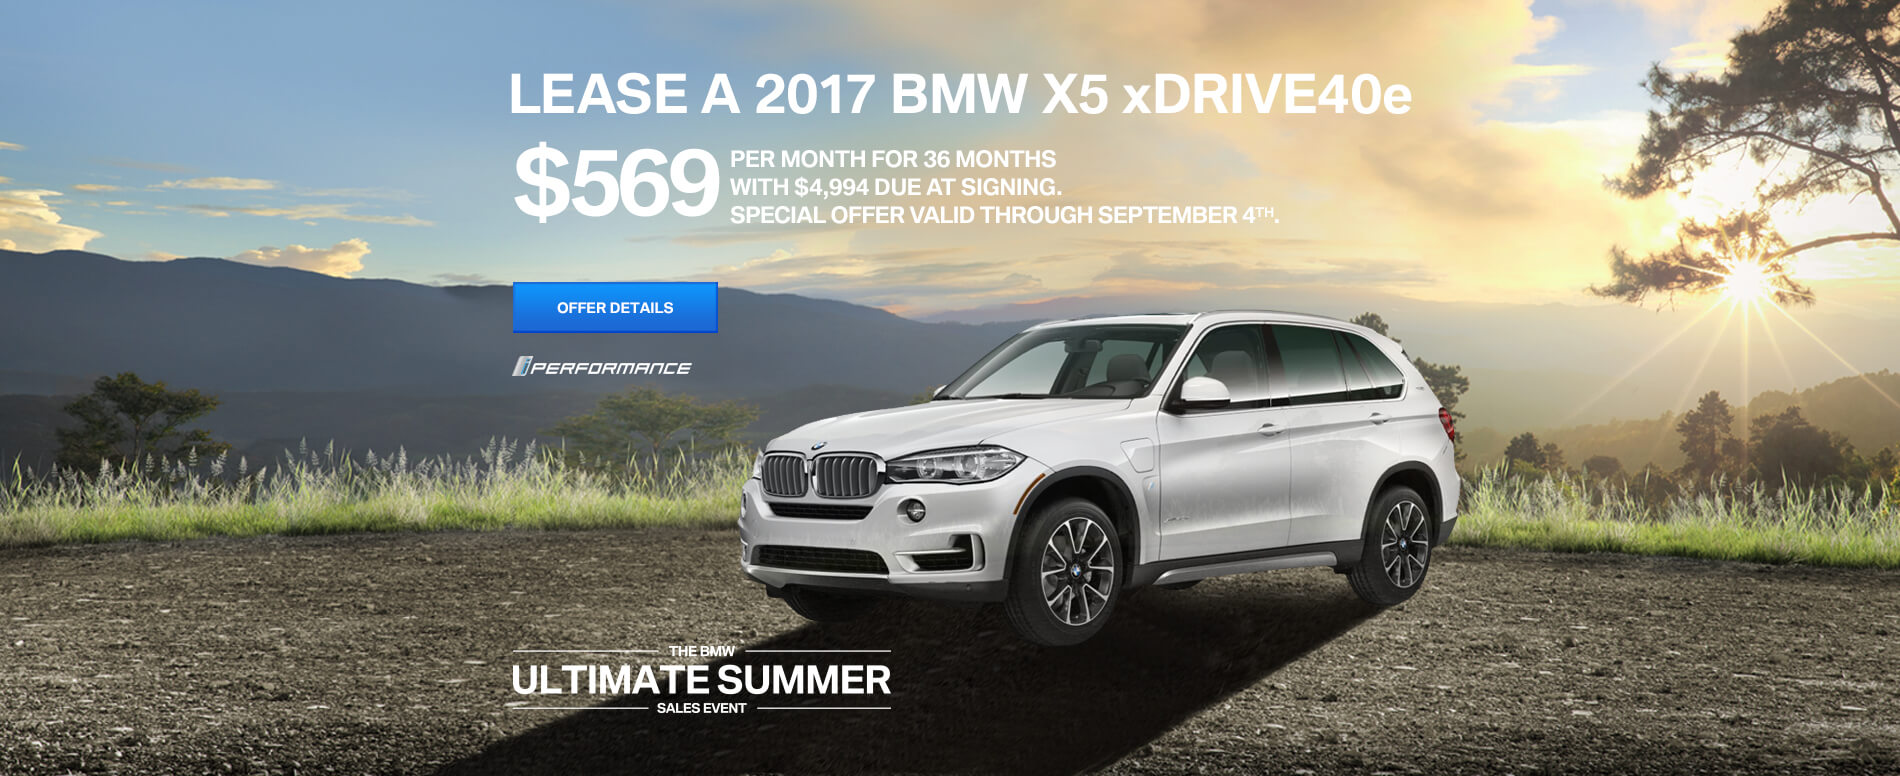 LEASE A 2017 X5 xDrive40e  FOR $599/MO FOR 36 MONTHS